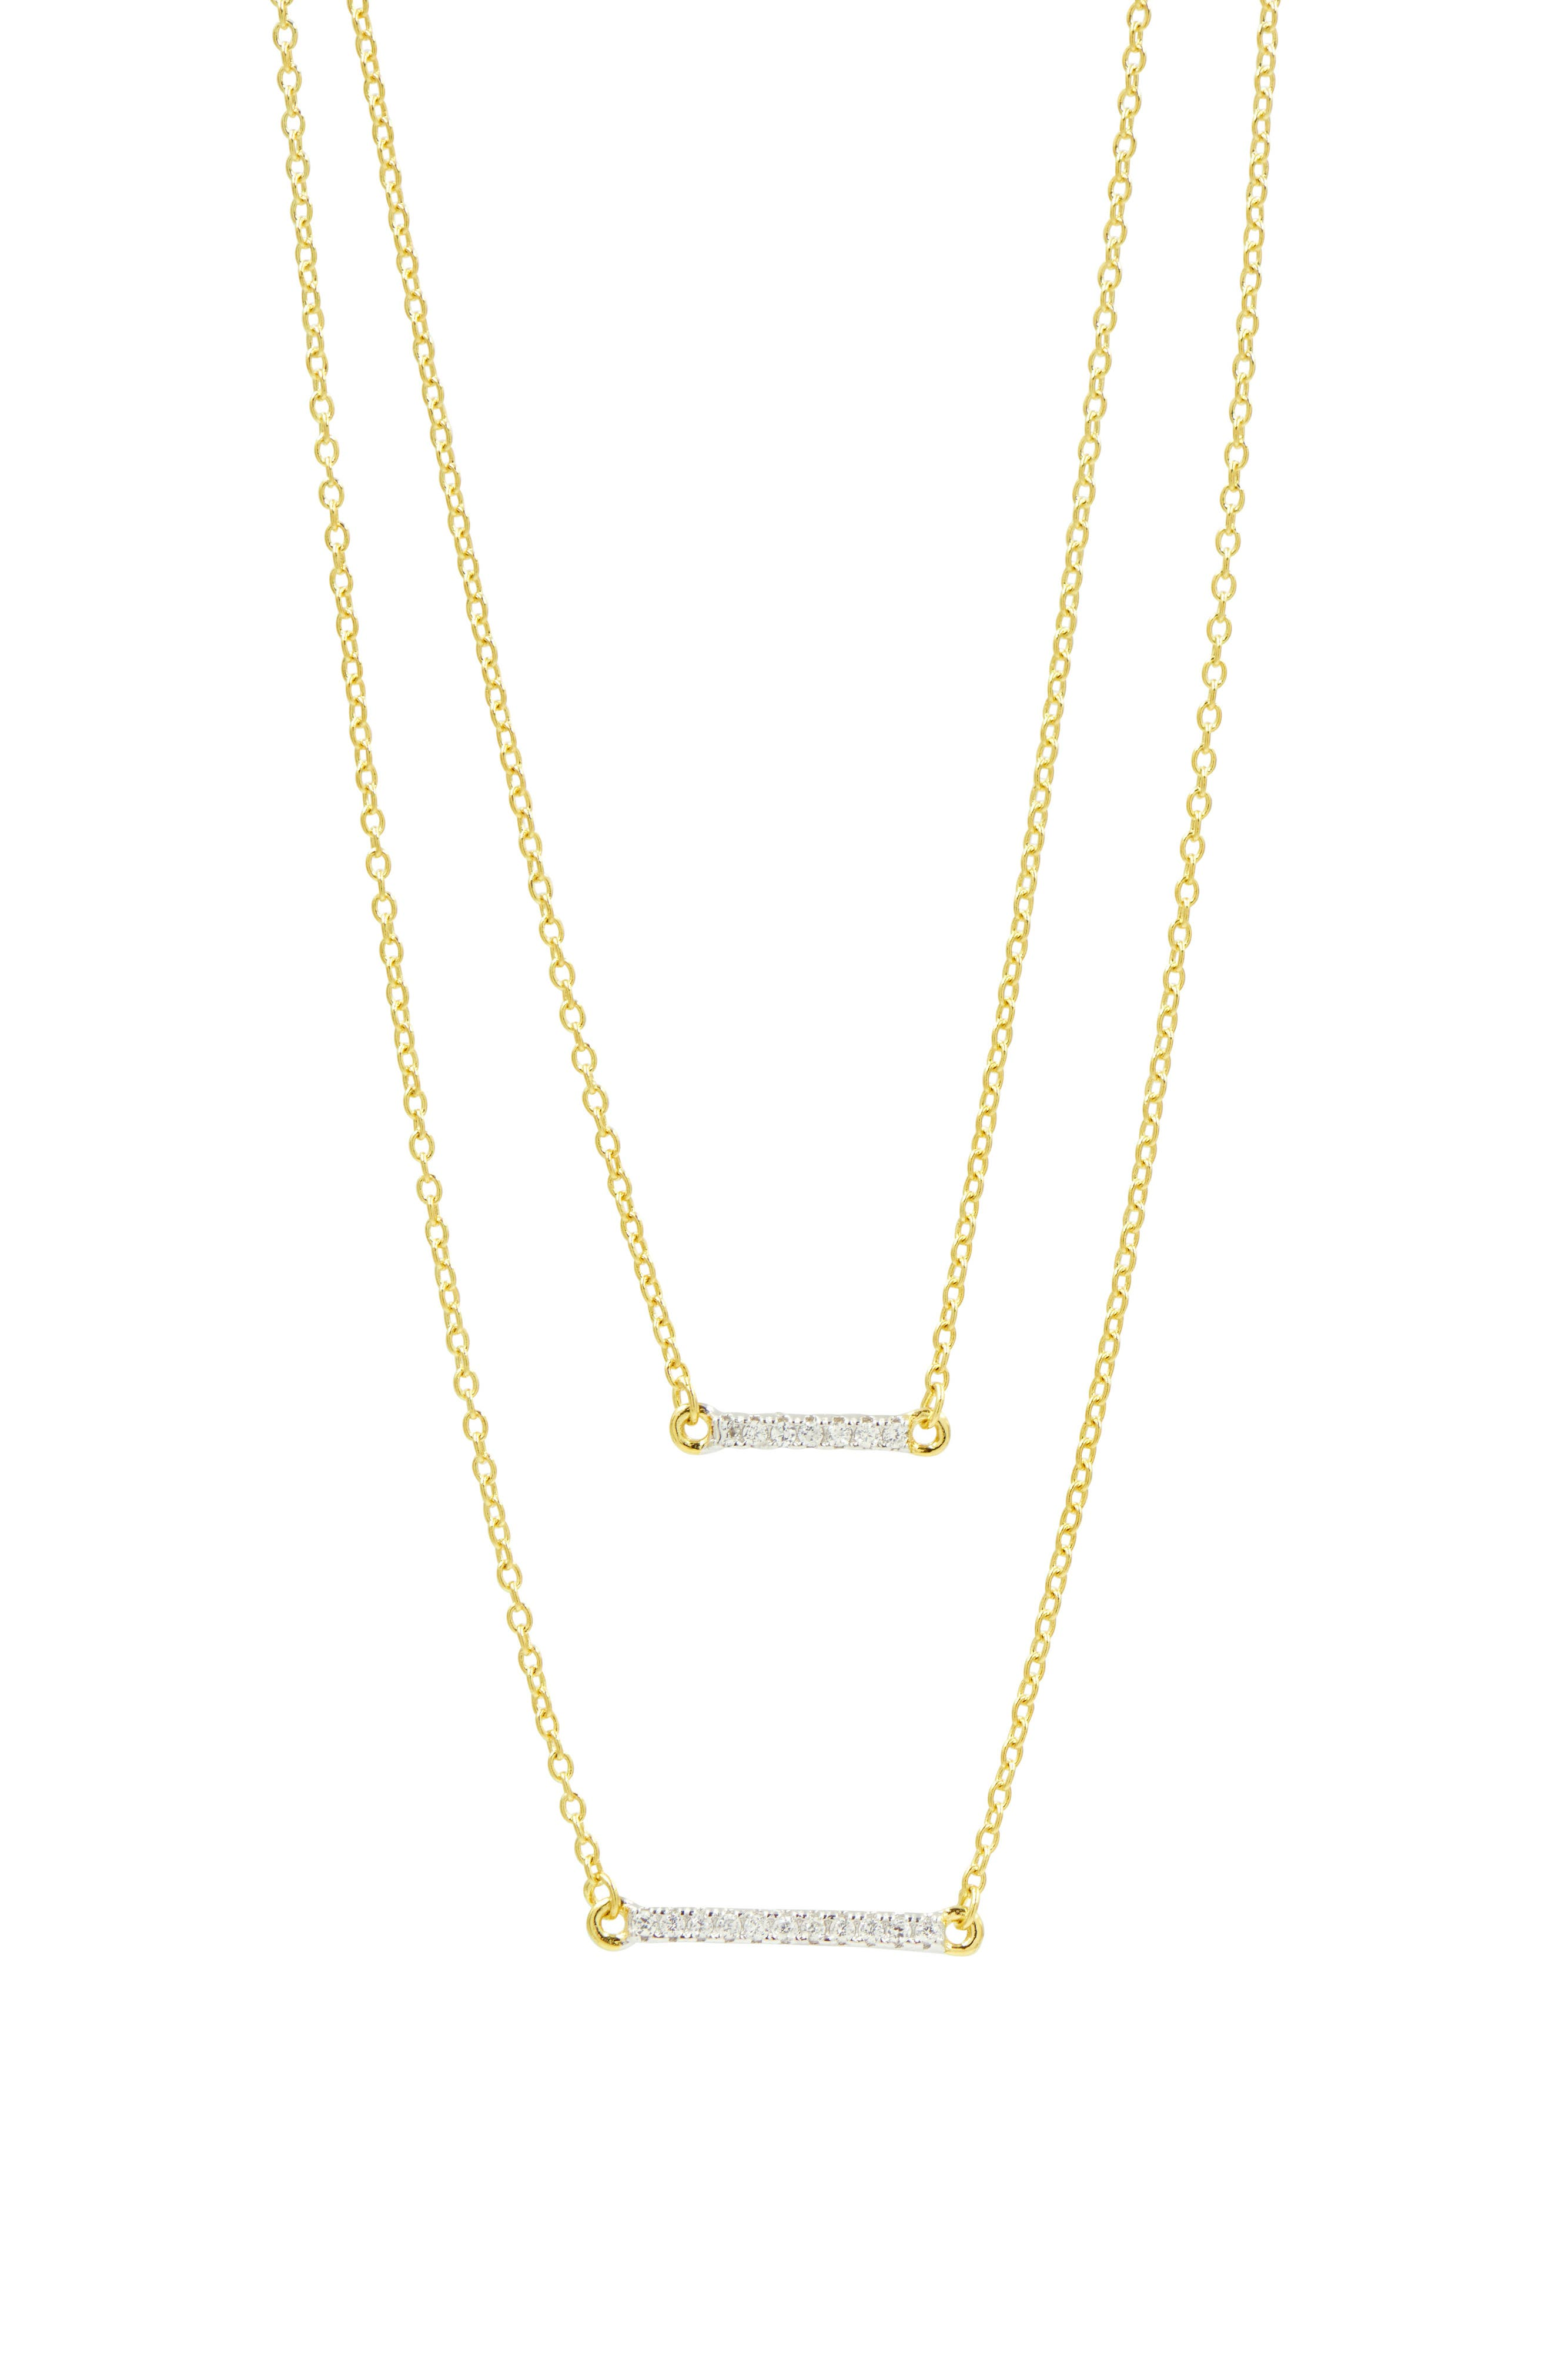 FREIDA ROTHMAN Radiance Double Pendant Necklace, Main, color, GOLD/ SILVER